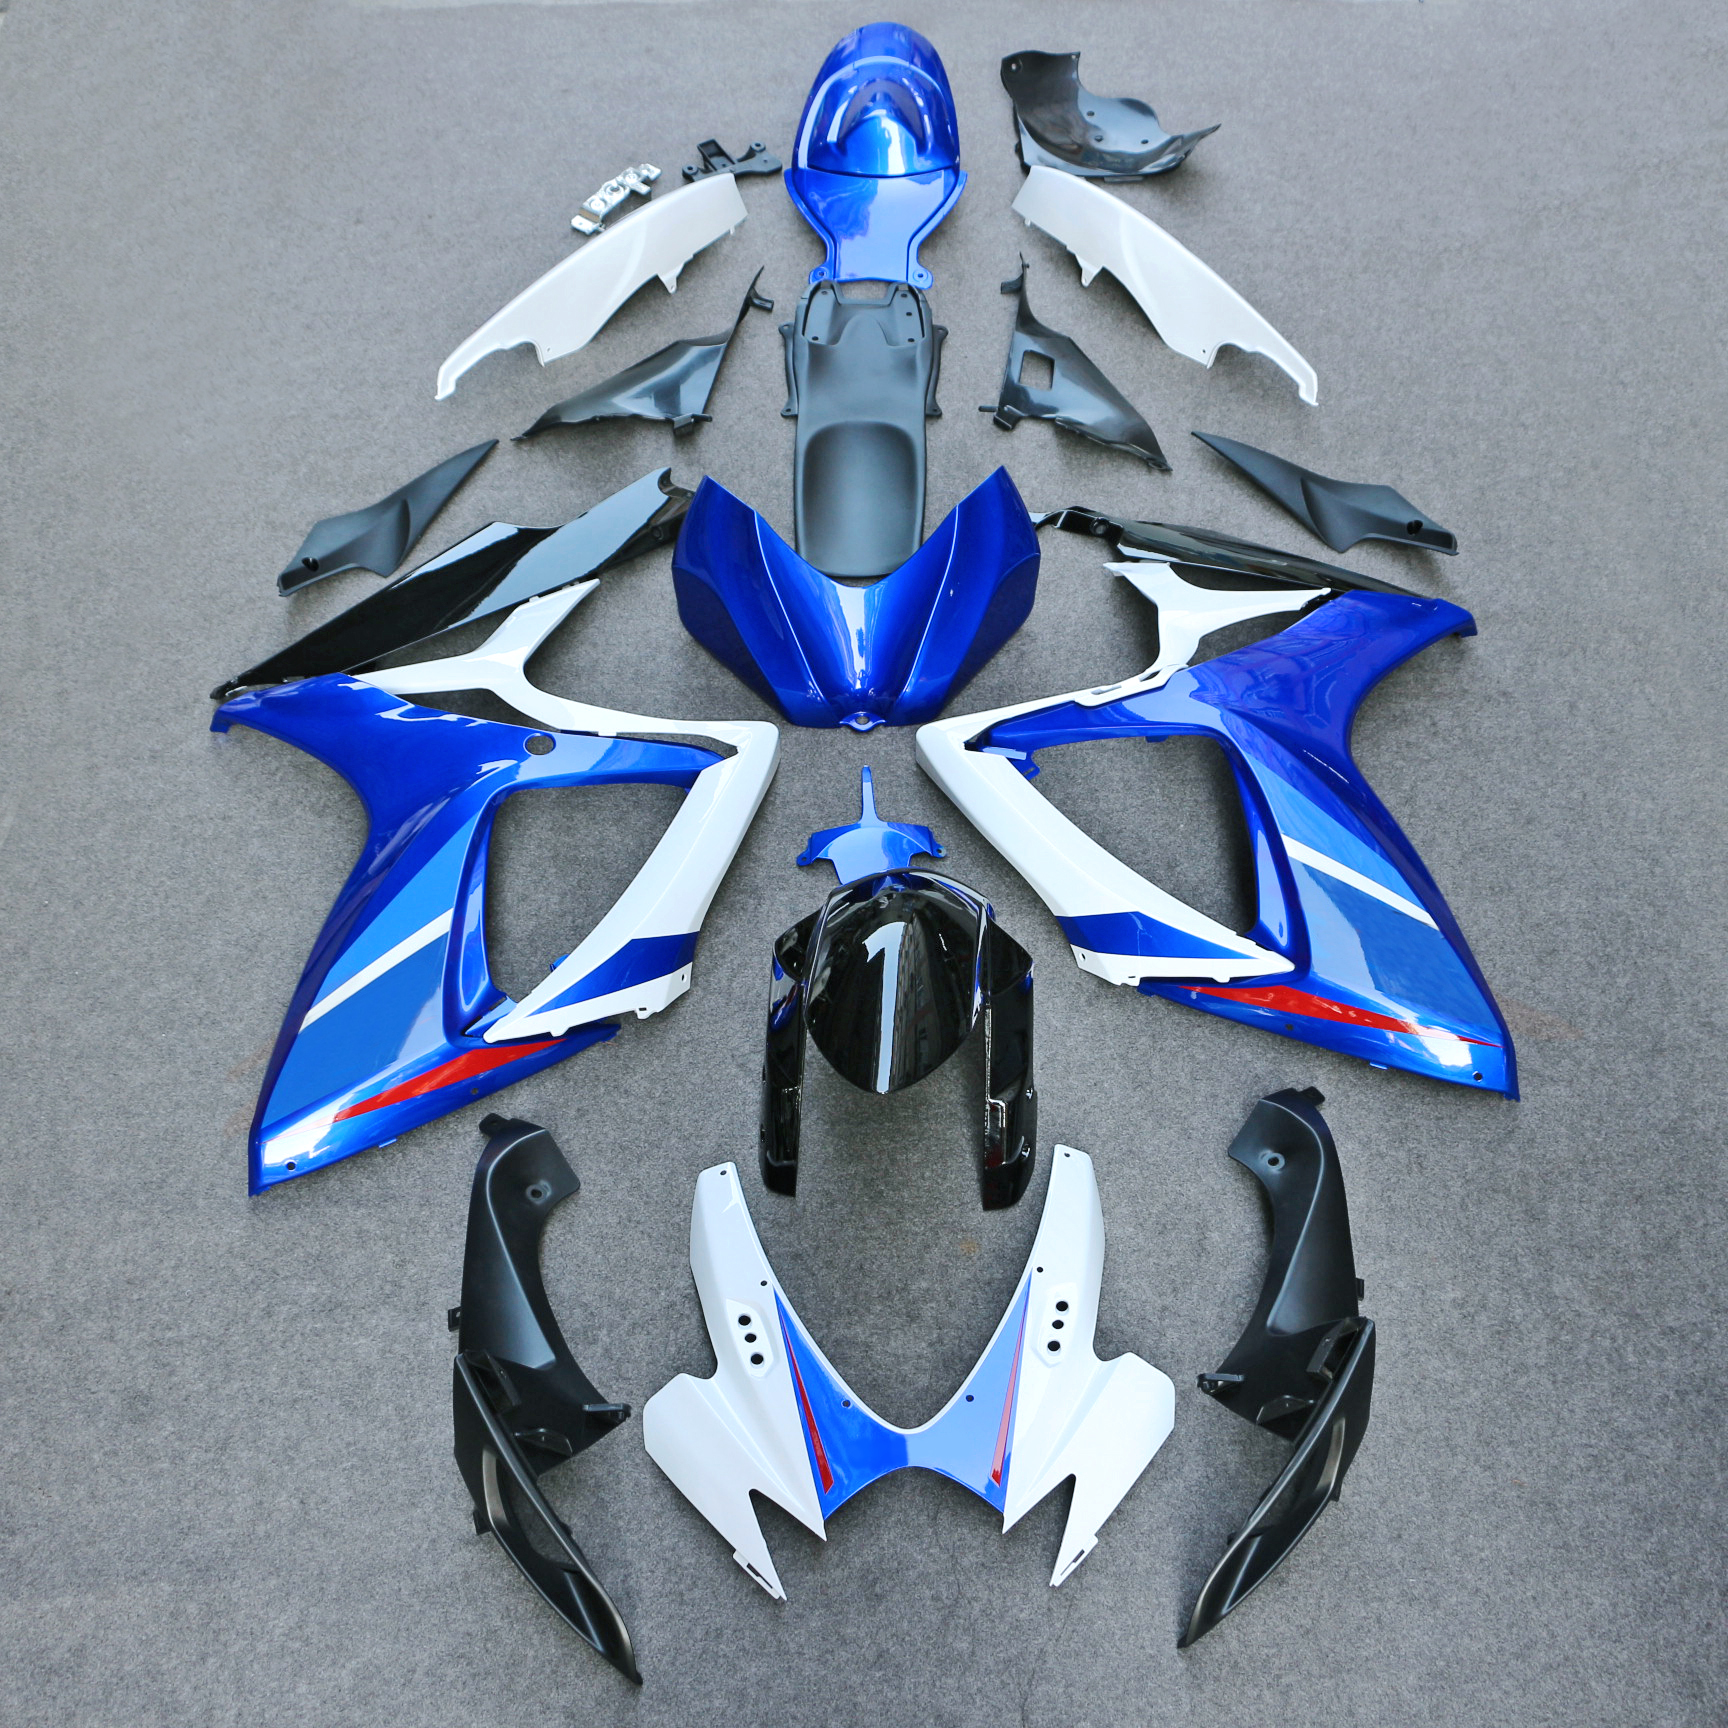 <font><b>fairings</b></font> for SUZUKI <font><b>GSXR</b></font> <font><b>600</b></font> 750 K6 K7 2006 <font><b>2007</b></font> matte black blue white <font><b>fairing</b></font> <font><b>kit</b></font> GSXR600 GSXR750 06 07 image